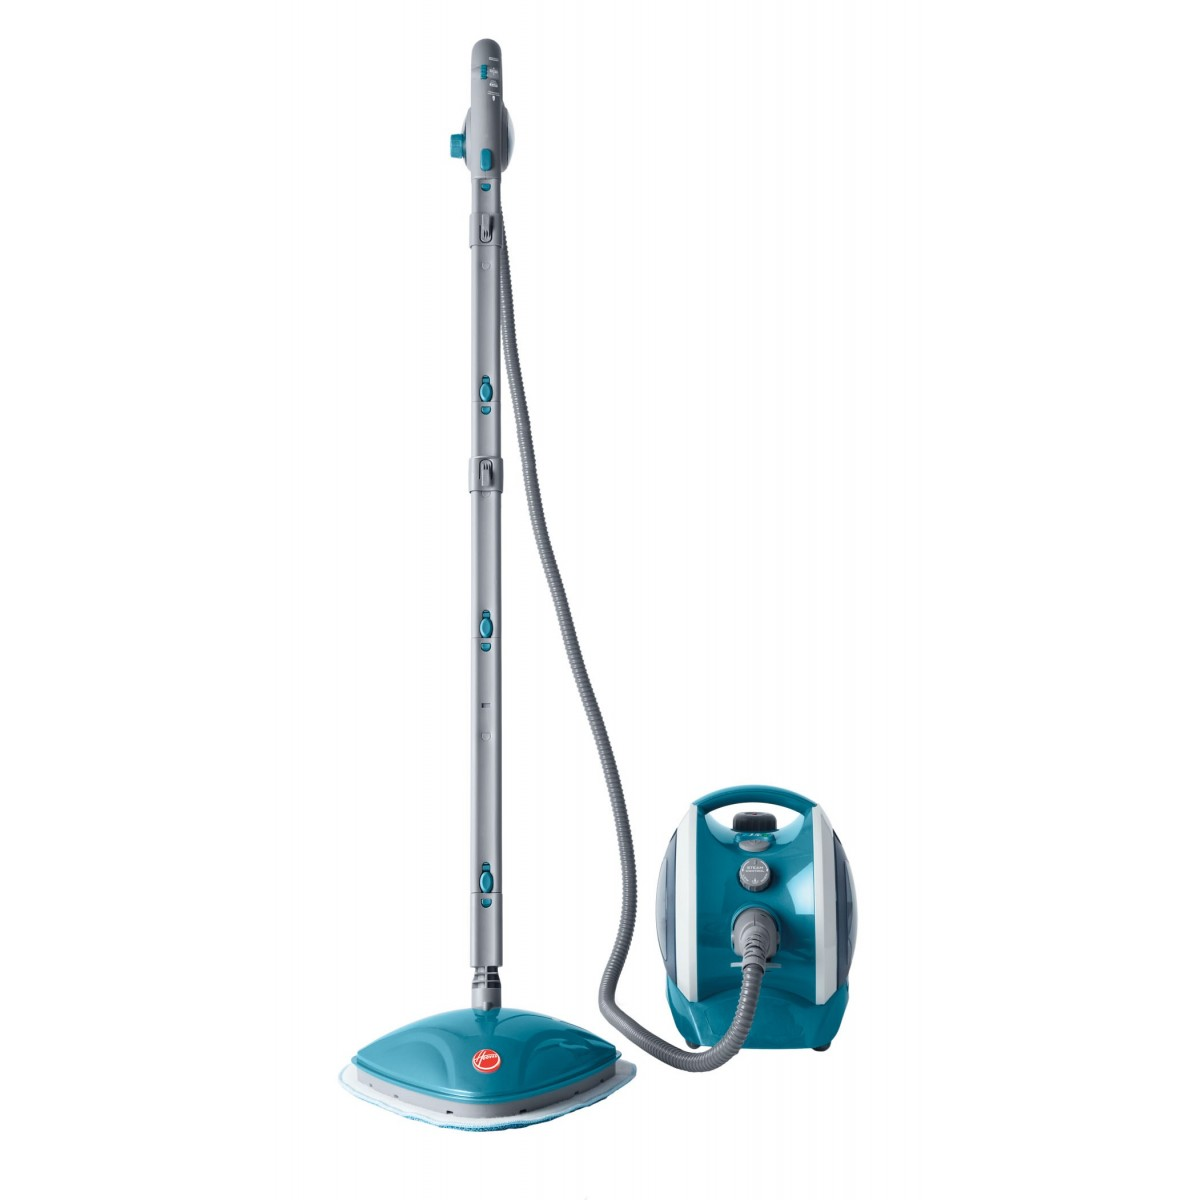 Hoover Twintank 174 Canister Steam Cleaner